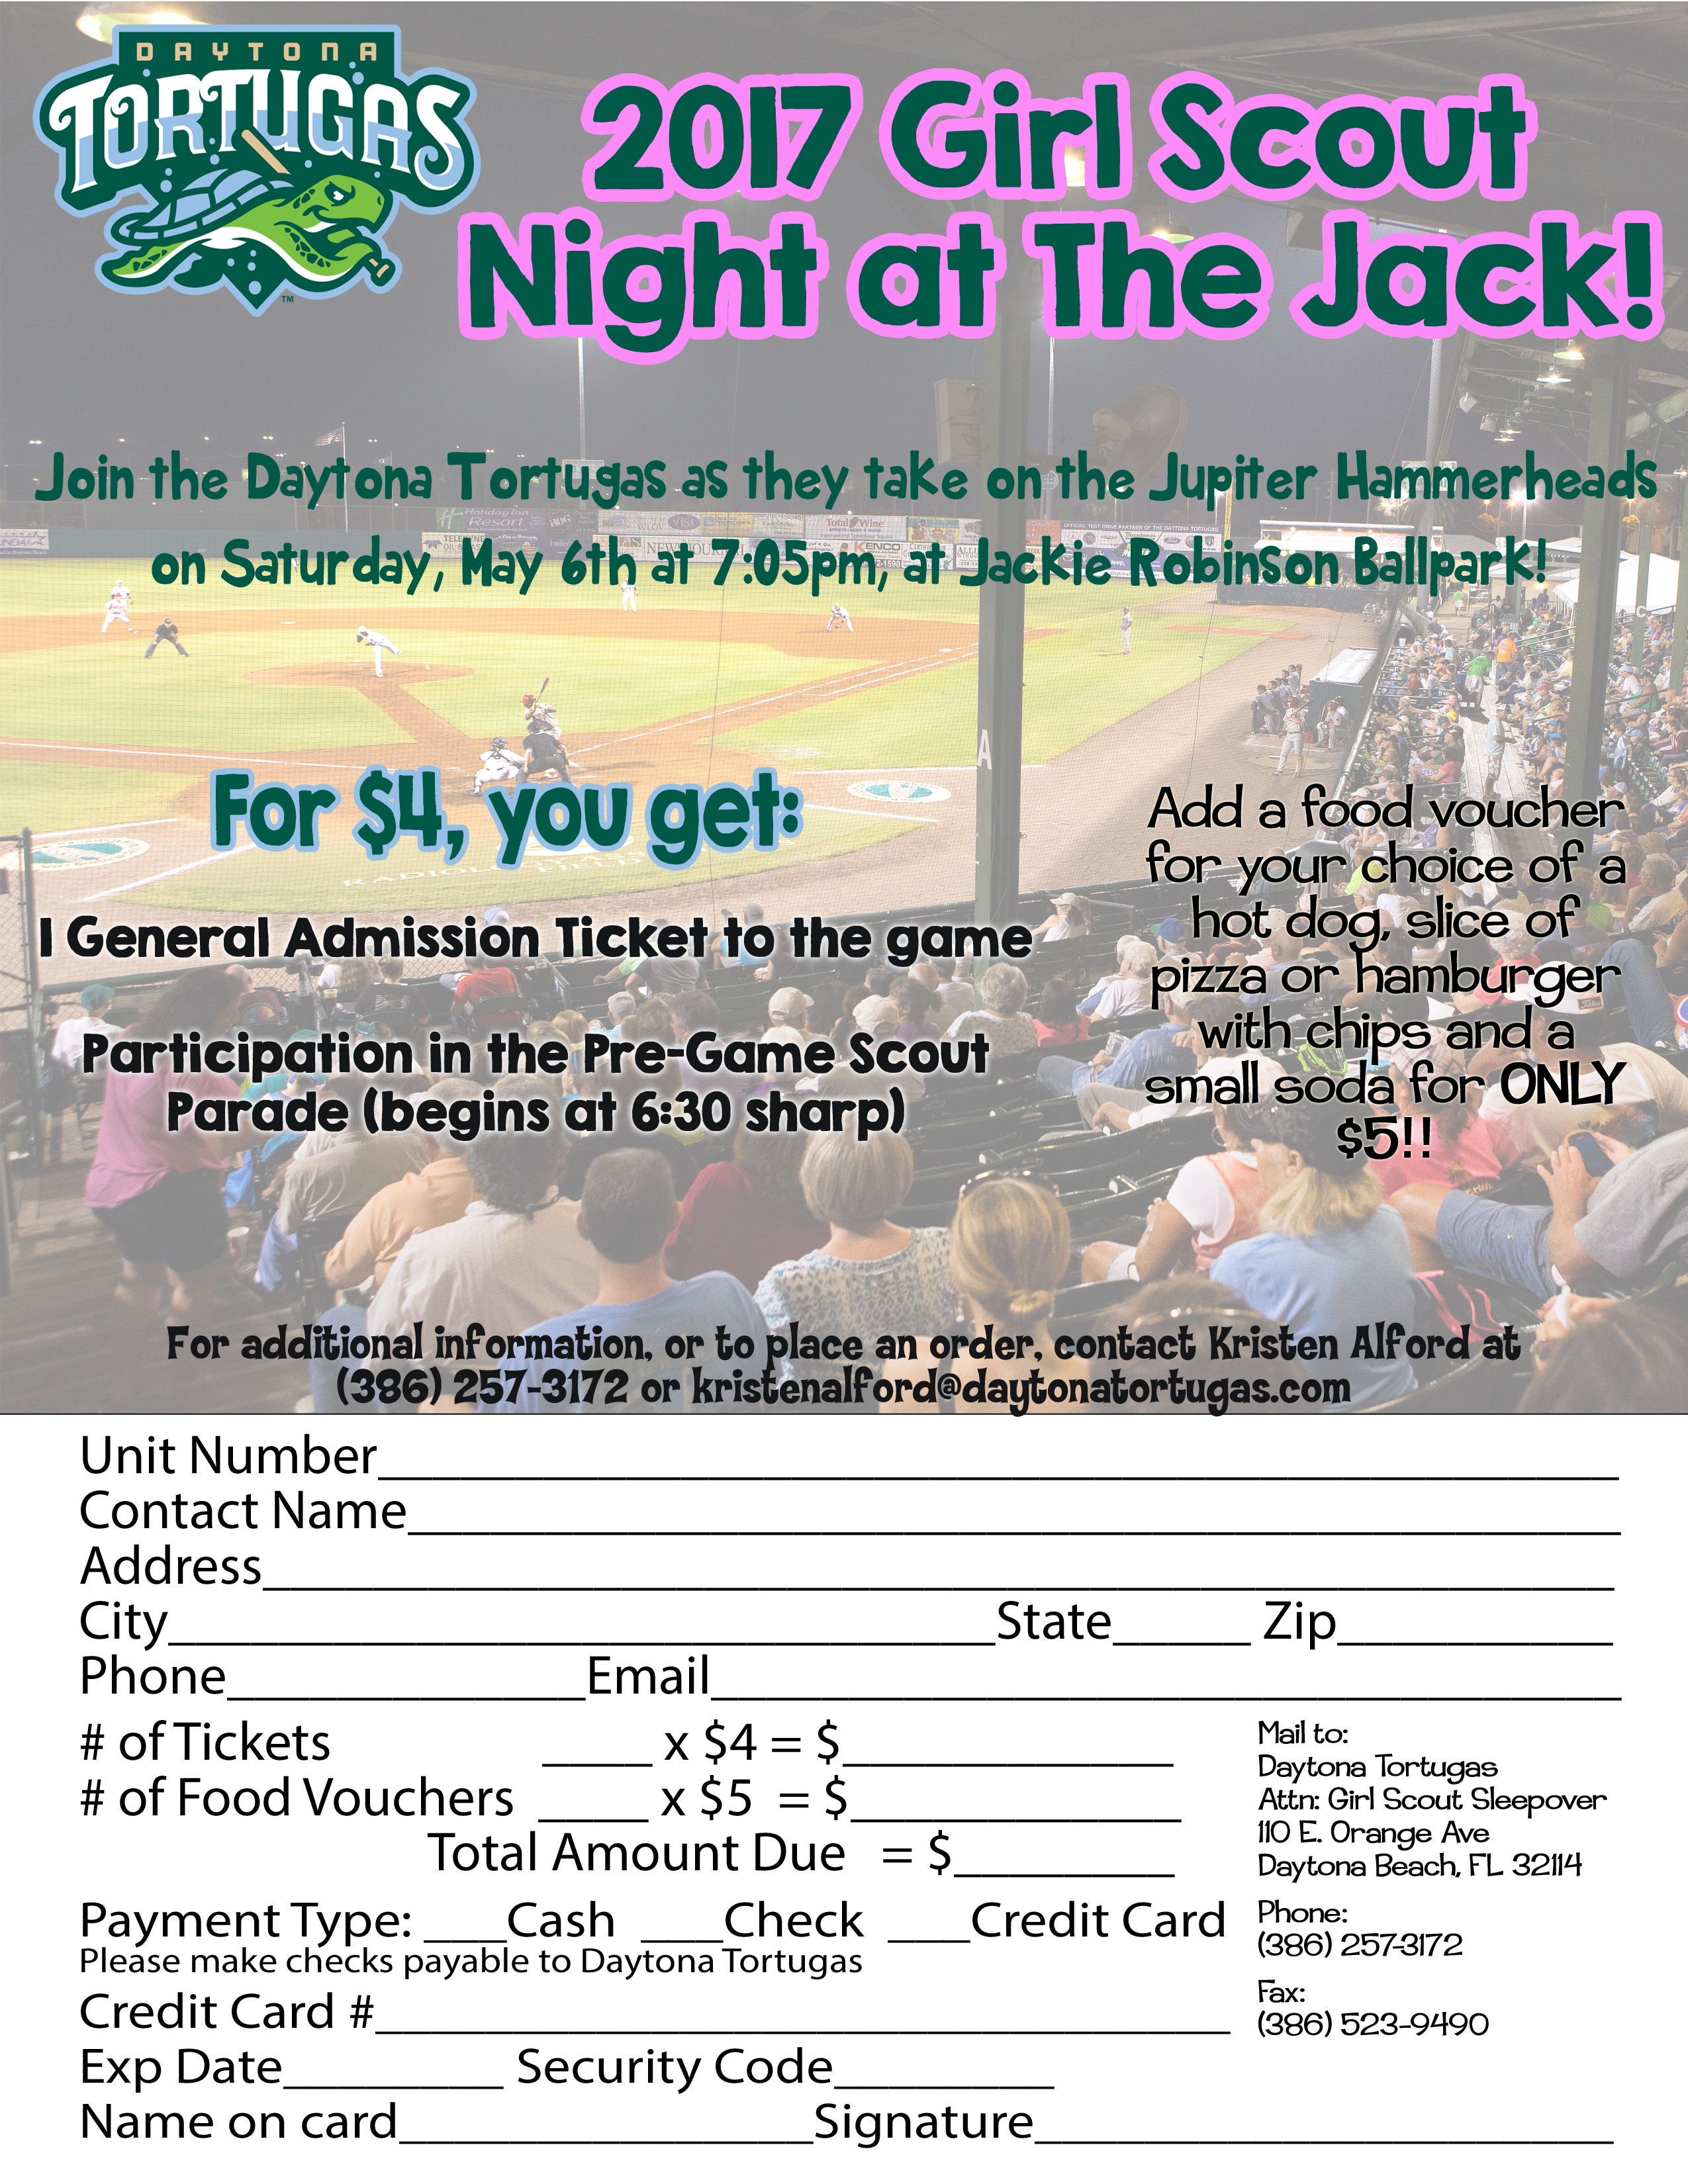 2017 Girl Scout Night | Daytona Tortugas Groups